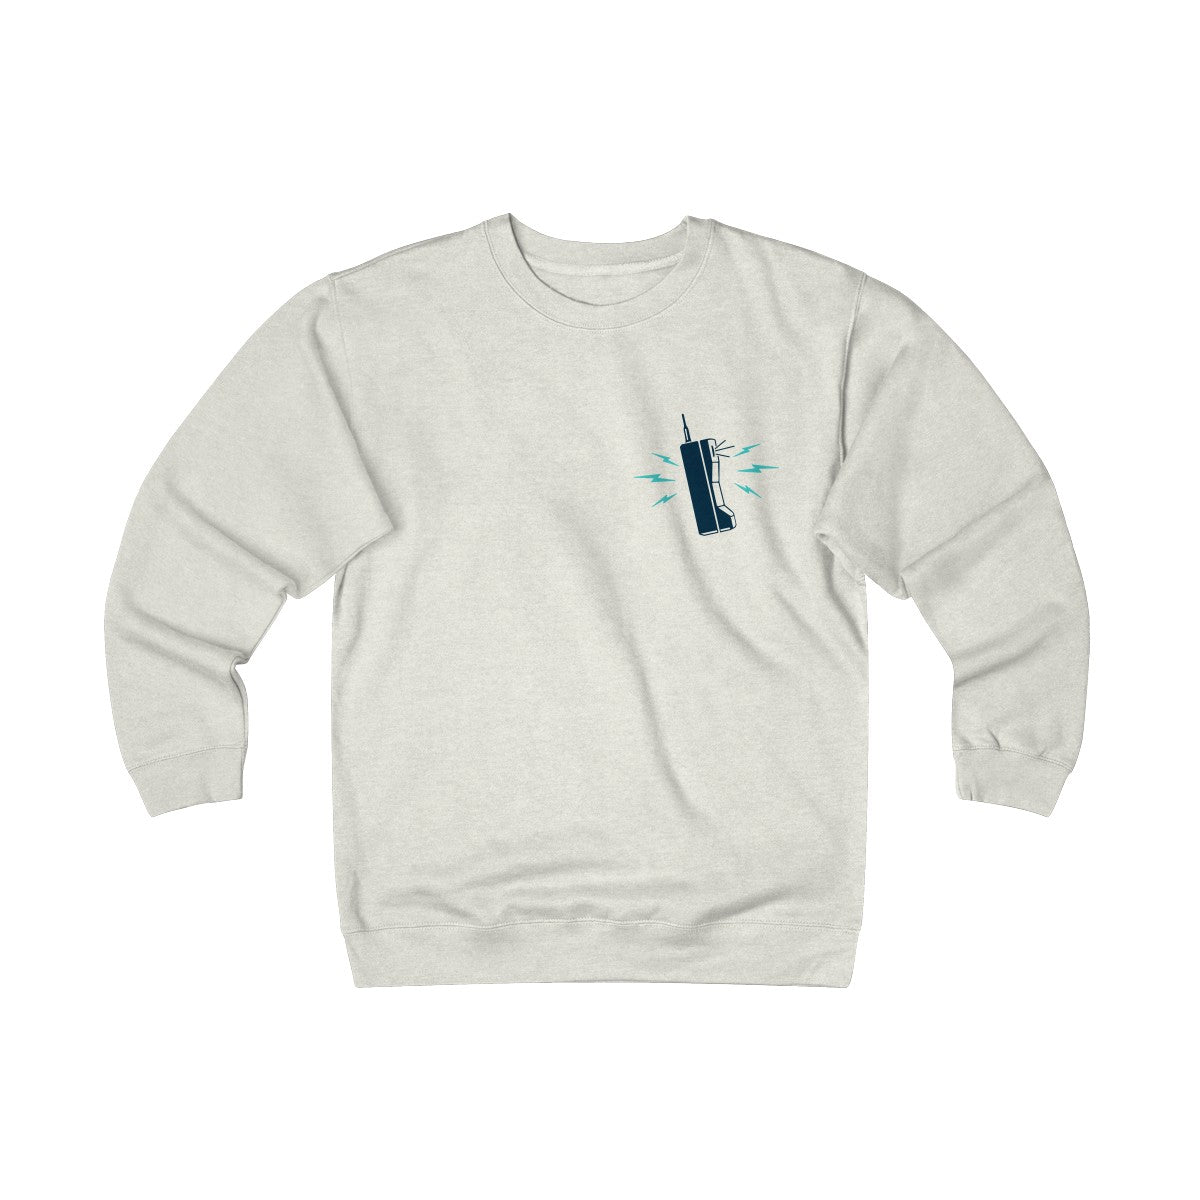 Vintage Cell Crew Neck Sweatshirt